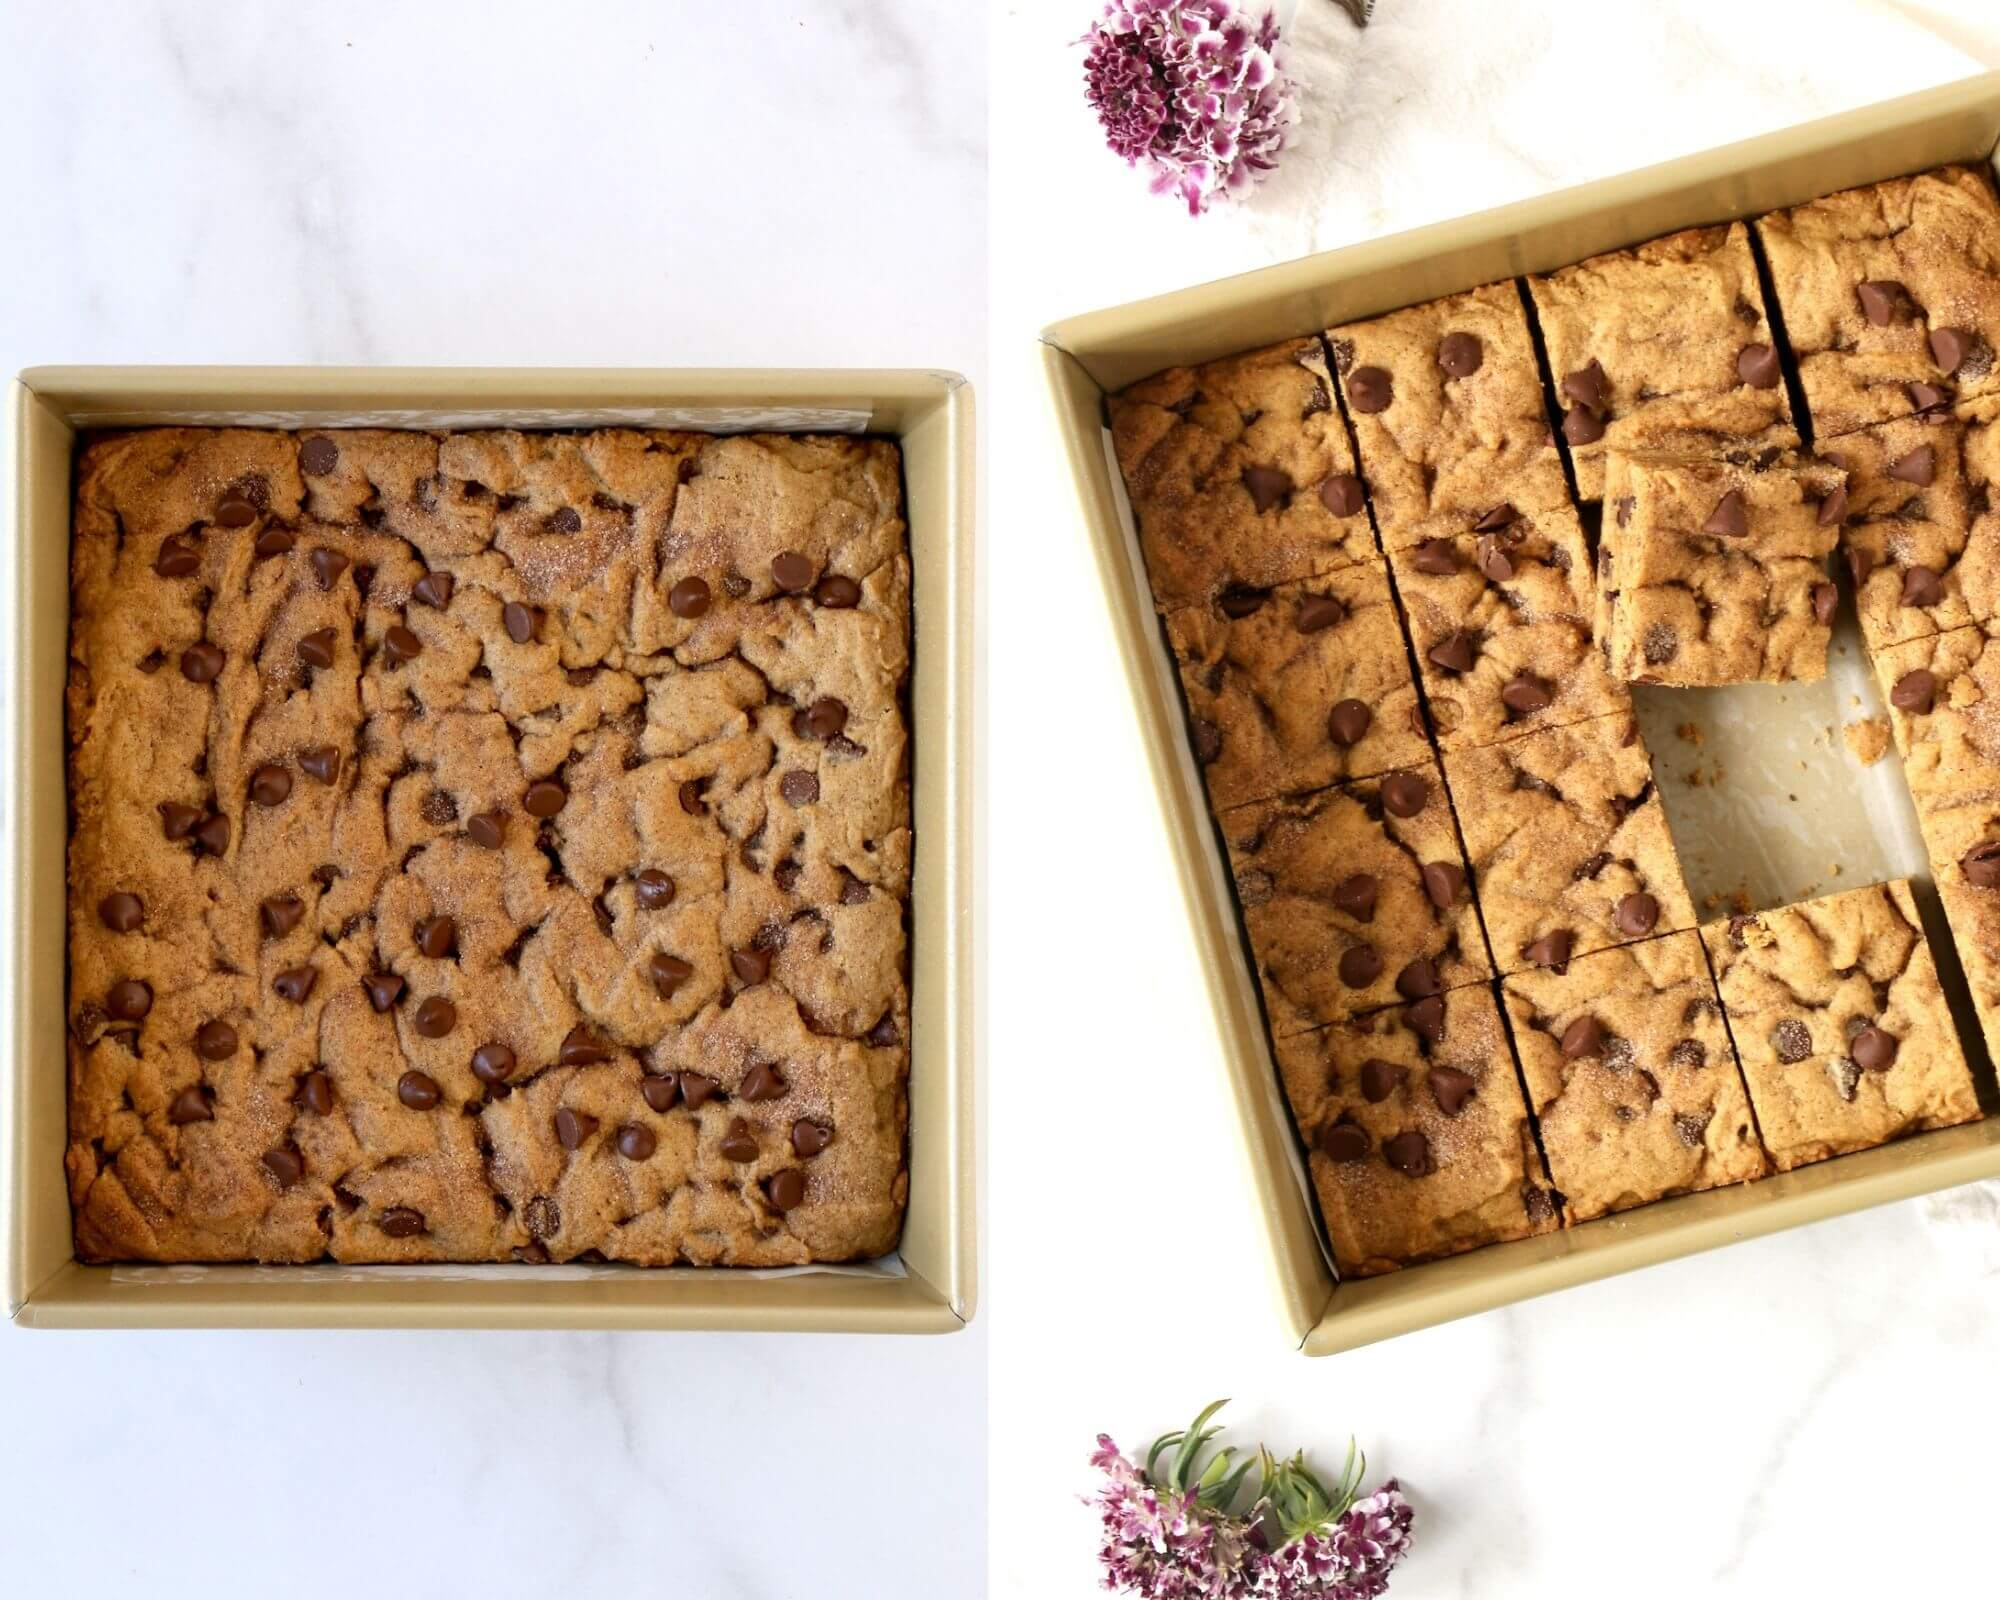 A square pan with baked cookie bars.